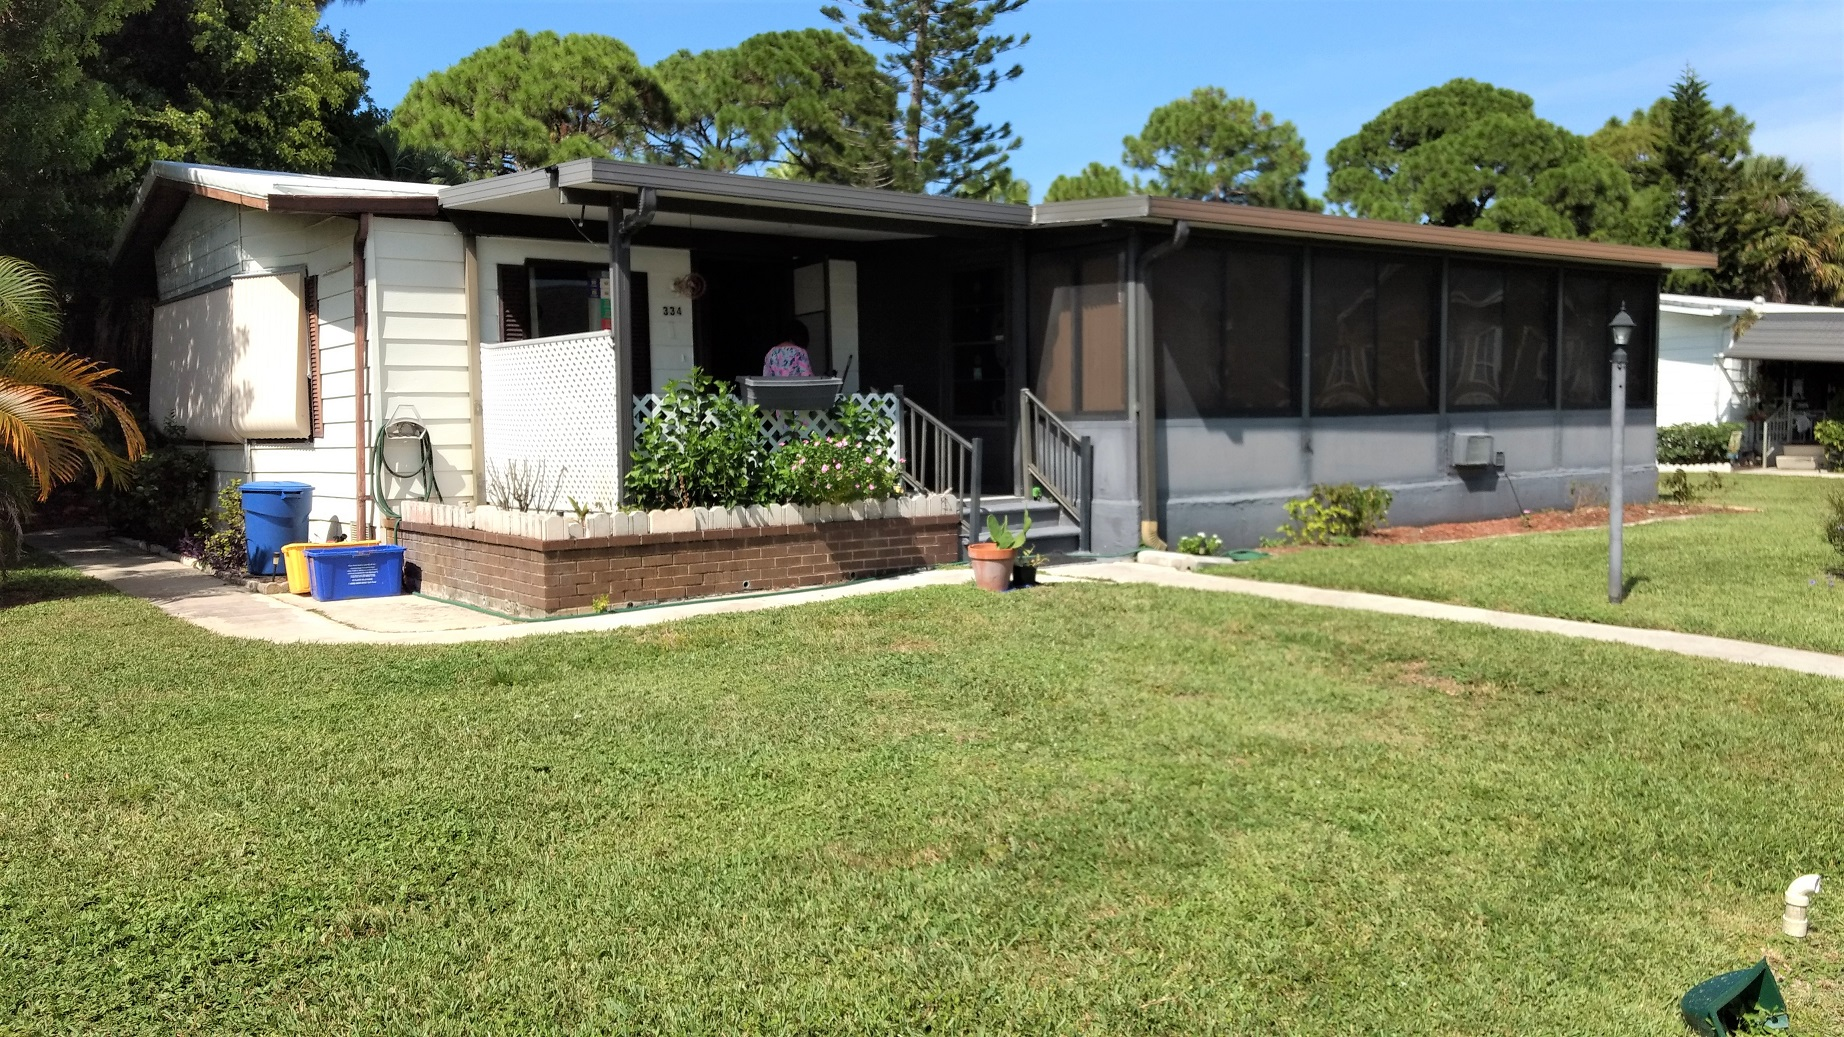 2B 2B Very Spacious Mobile Home 3 Months Lot Rent Free!-TMF 334 ...